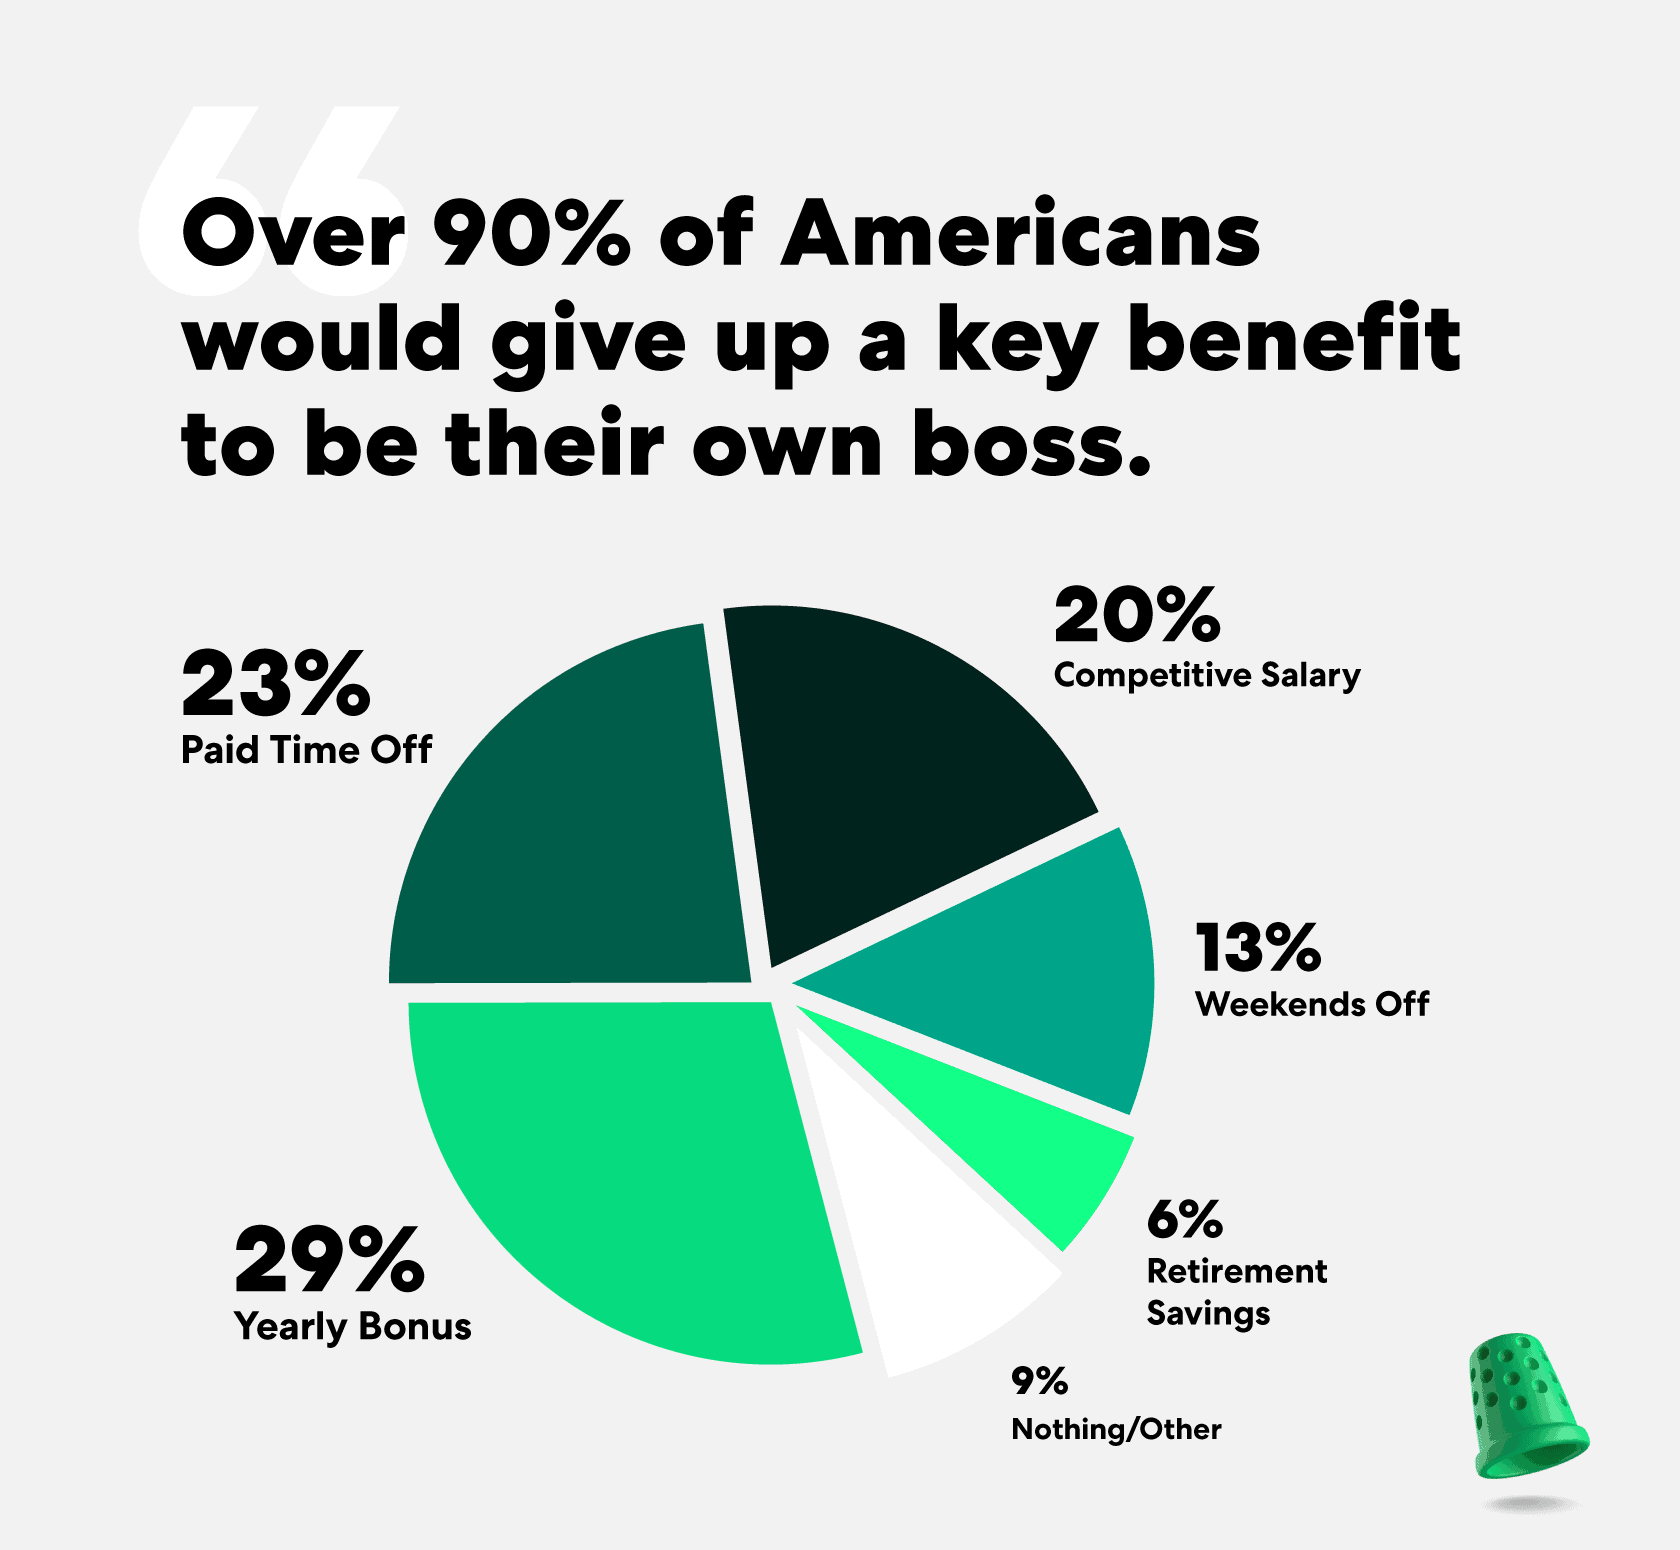 americans would trade in key benefits to be the boss